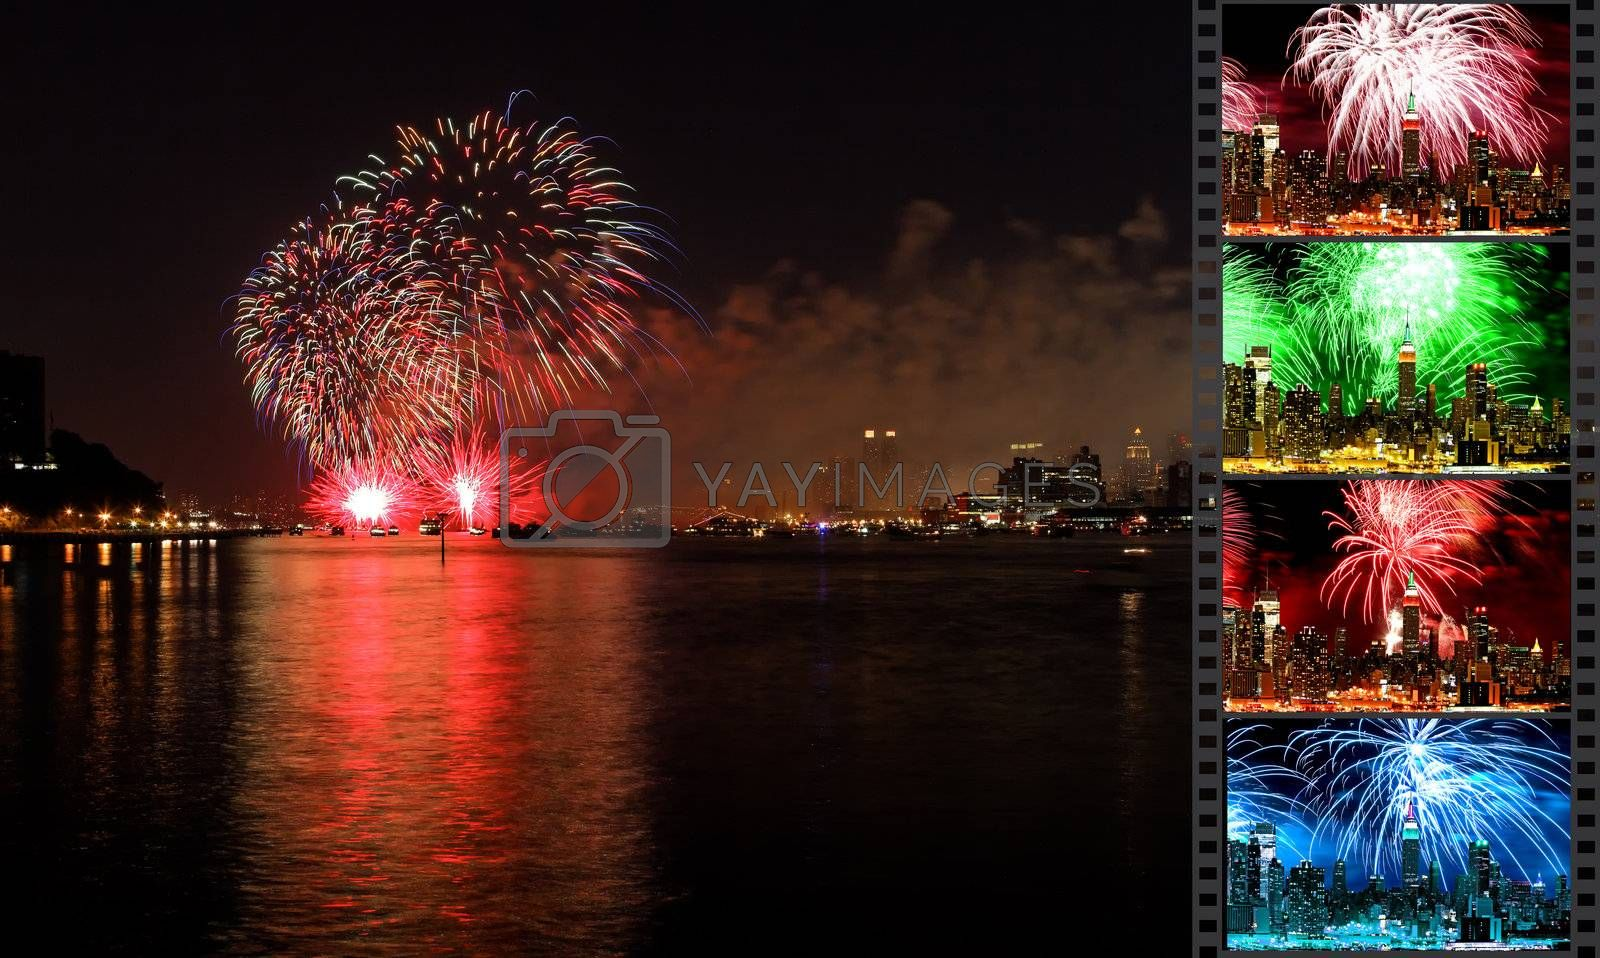 NEW YORK - JULY 4: The largest  fireworks in the country displayed over the Hudson River - the Macy's 4th of July fireworks on July 4, 2010 in New York City.